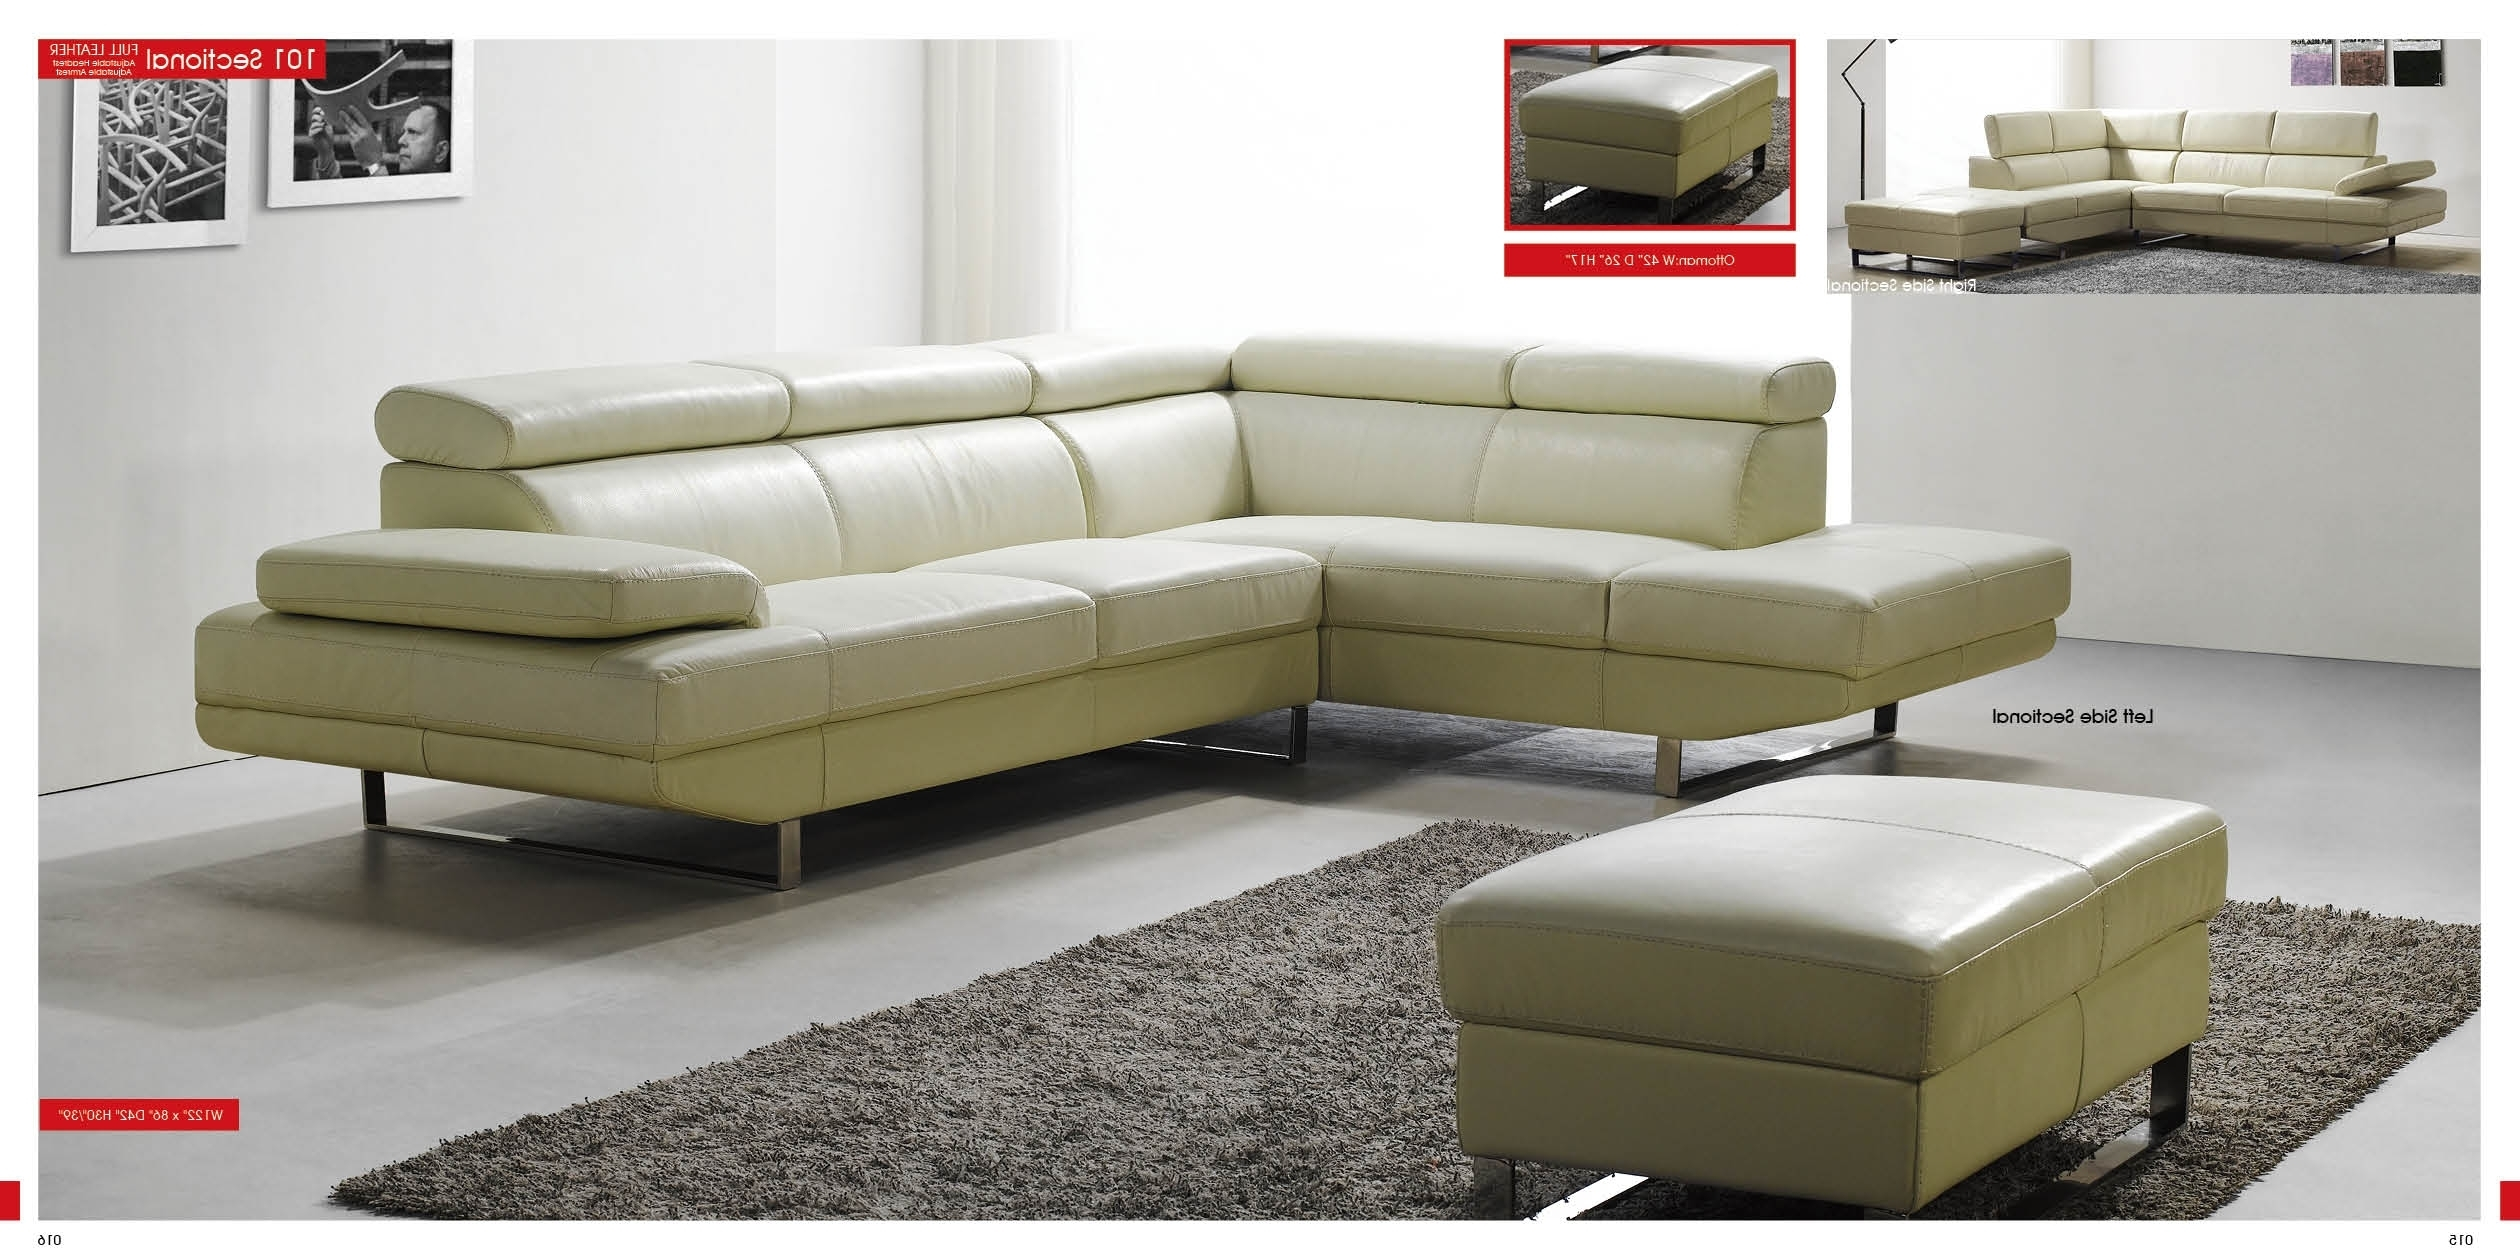 Most Recently Released Sleek Sectional Sofas Throughout Collection Sleek Sectional Sofa – Mediasupload (View 4 of 15)